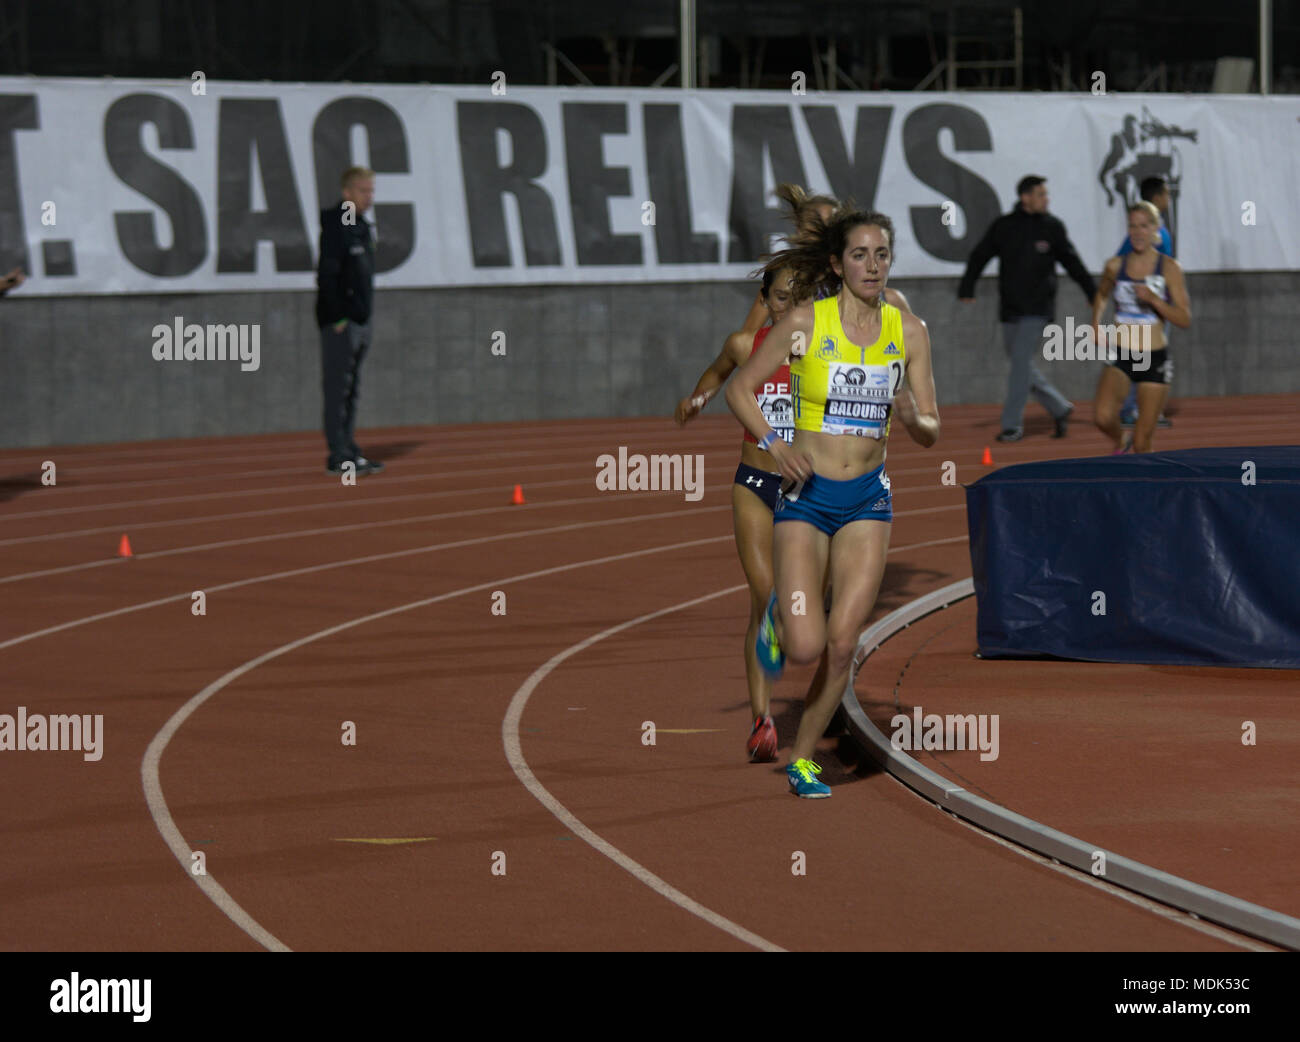 Walnut, California, USA. 19th Apr, 2018. Eventual champion Camilla Richardsson (right, background) closes in on the lead pair of Elaina Tabb (Balouris, front) and Gladys Tejeda Pucuhuaran, as they pass another runner during the first of two Invitational sections of the women's 10k, at the 2018 Mt. SAC Relays. Credit: Omari Stephens/Alamy Live News - Stock Image